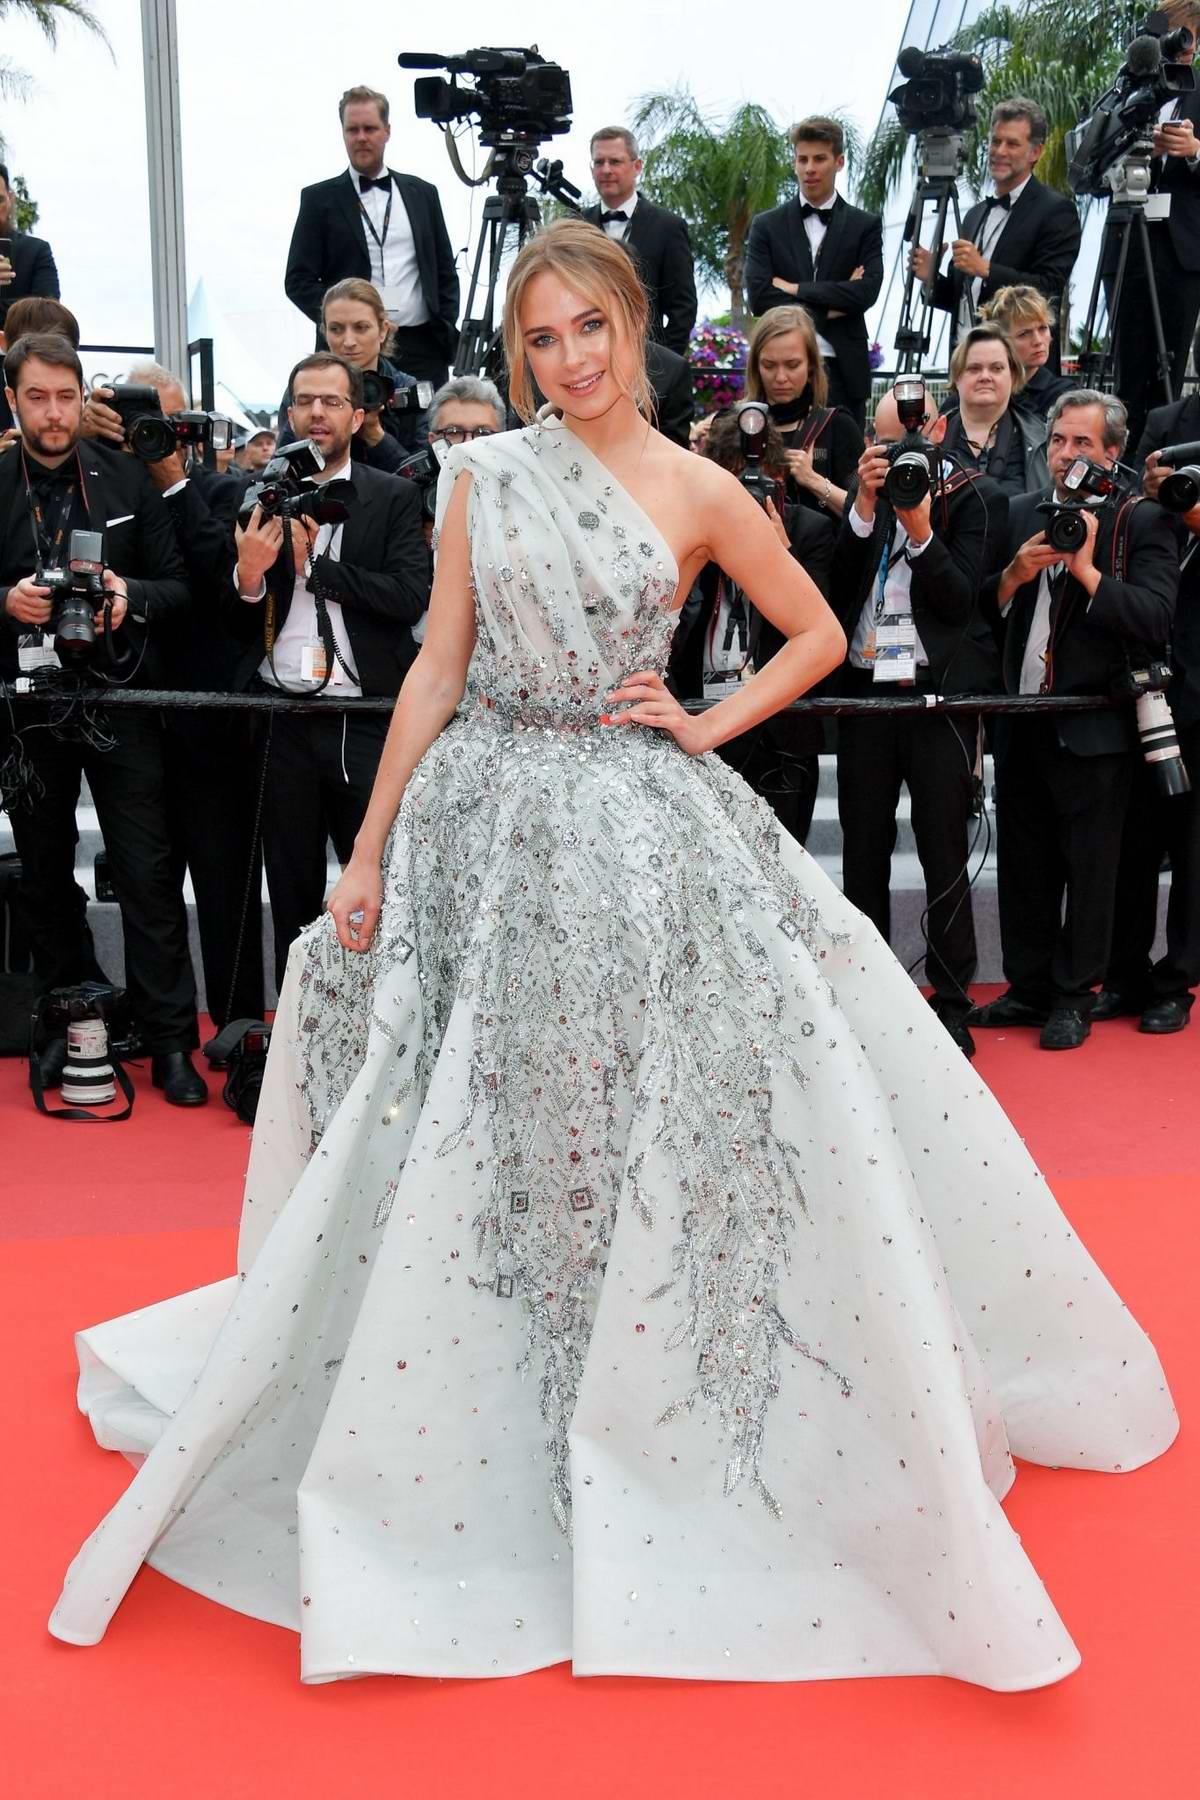 Kimberley Garner attends the screening of 'La Belle Epoque' during the 72nd annual Cannes Film Festival in Cannes, France